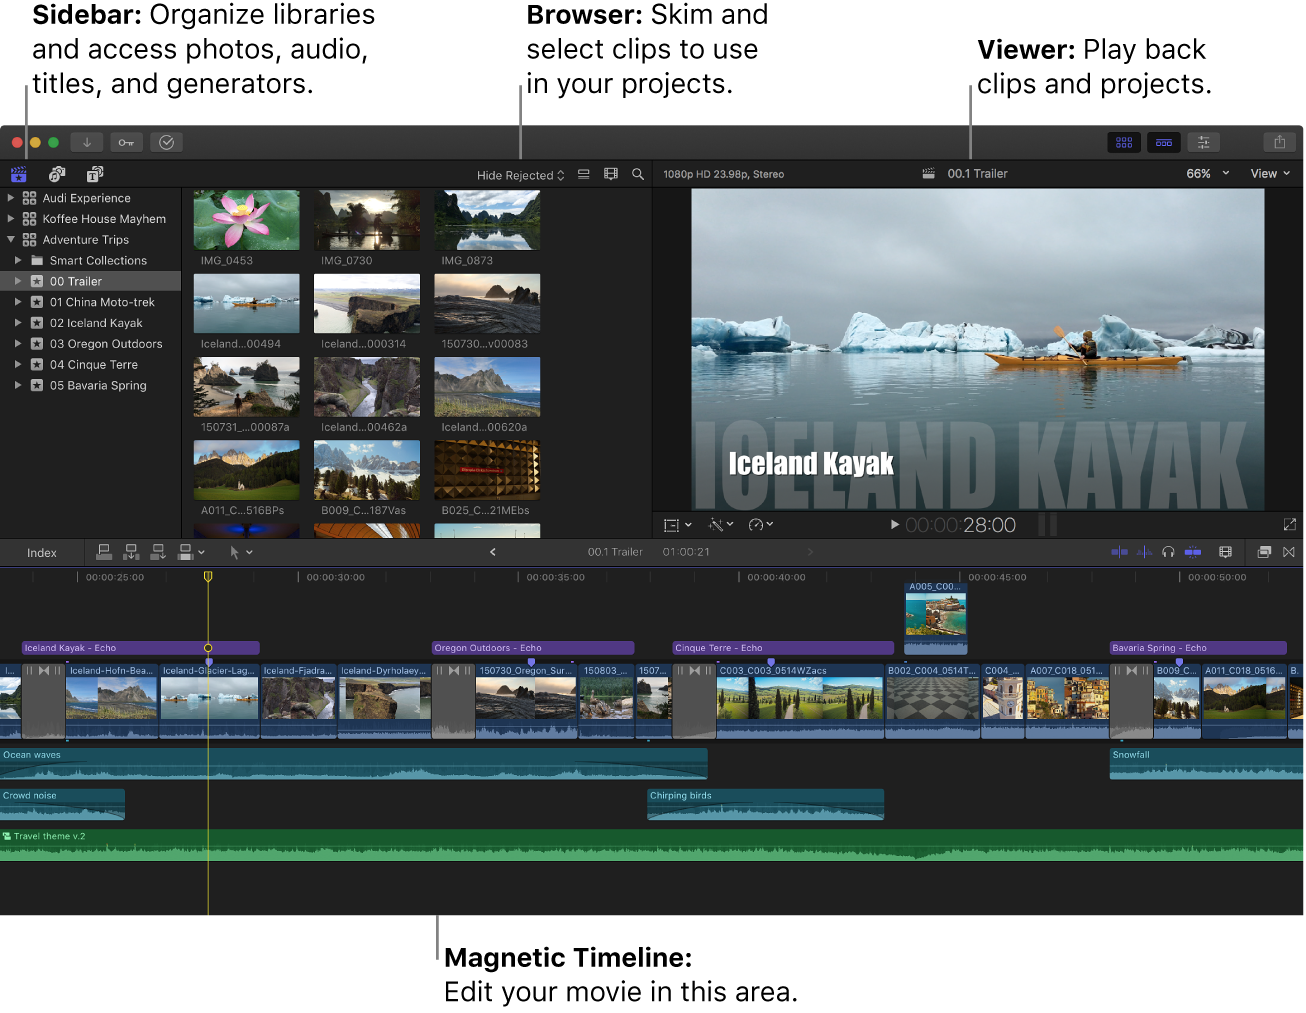 The Final Cut Pro window showing the Libraries sidebar, the browser, the viewer, and the timeline